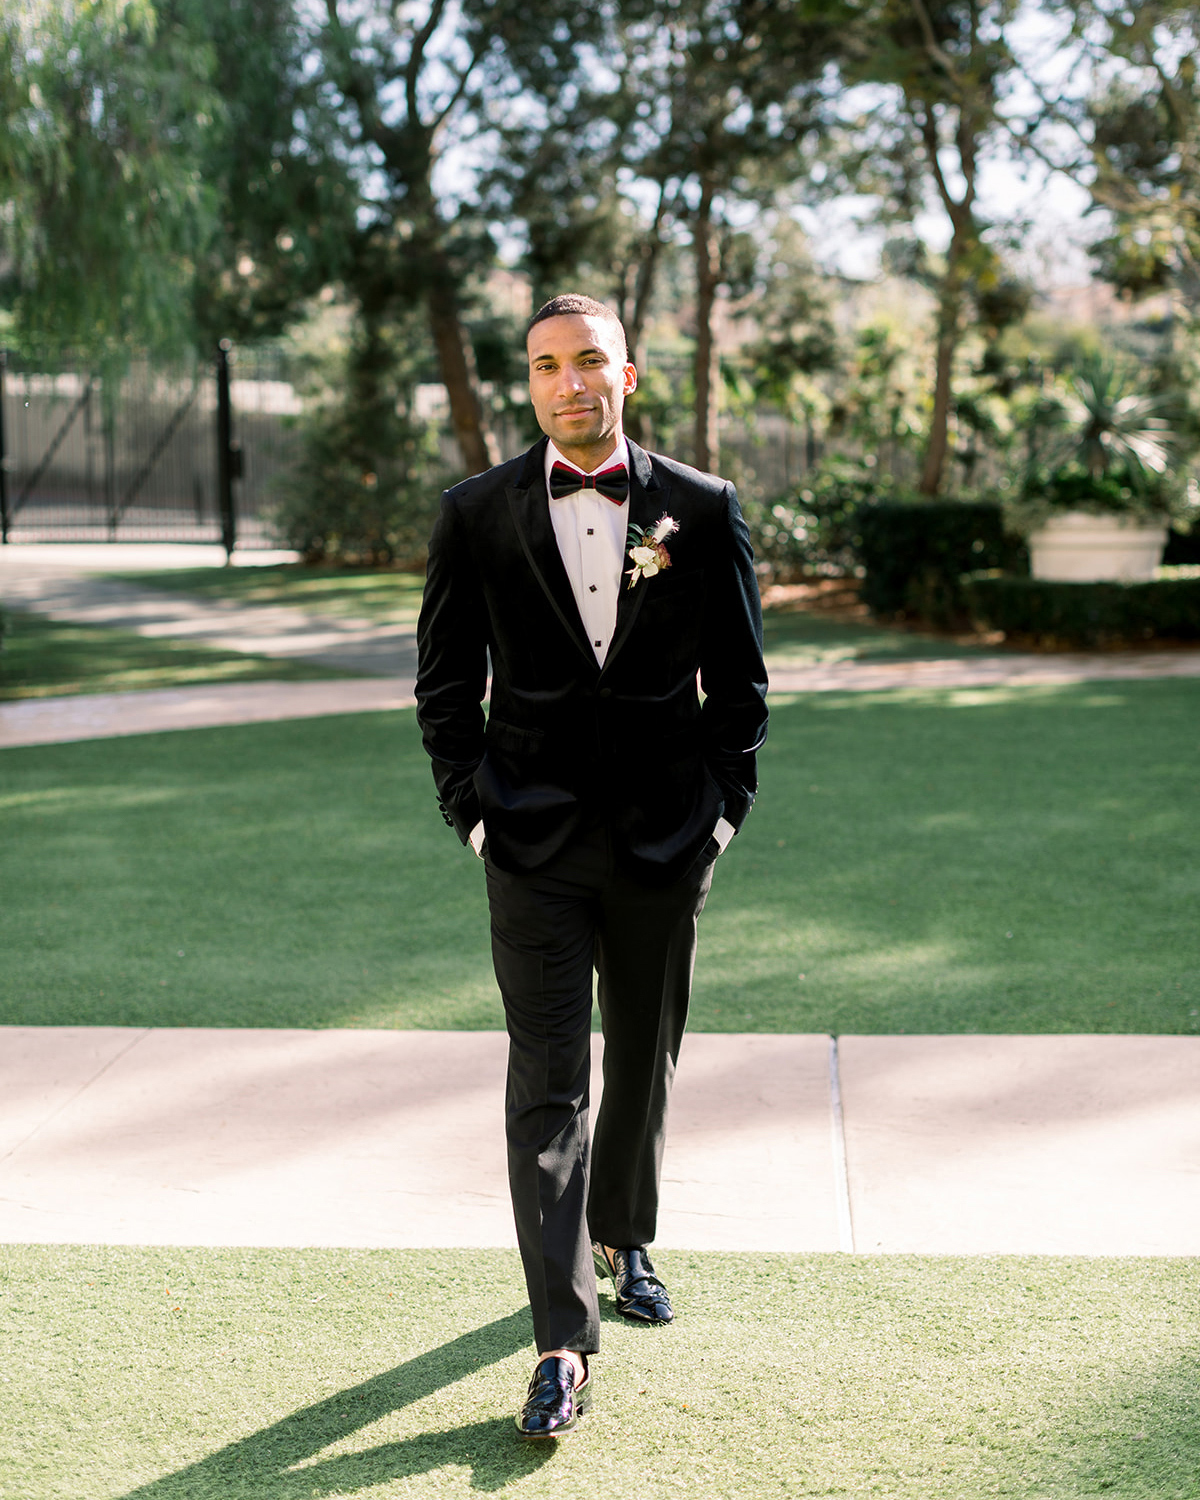 groom in black tux with bowtie with red accents